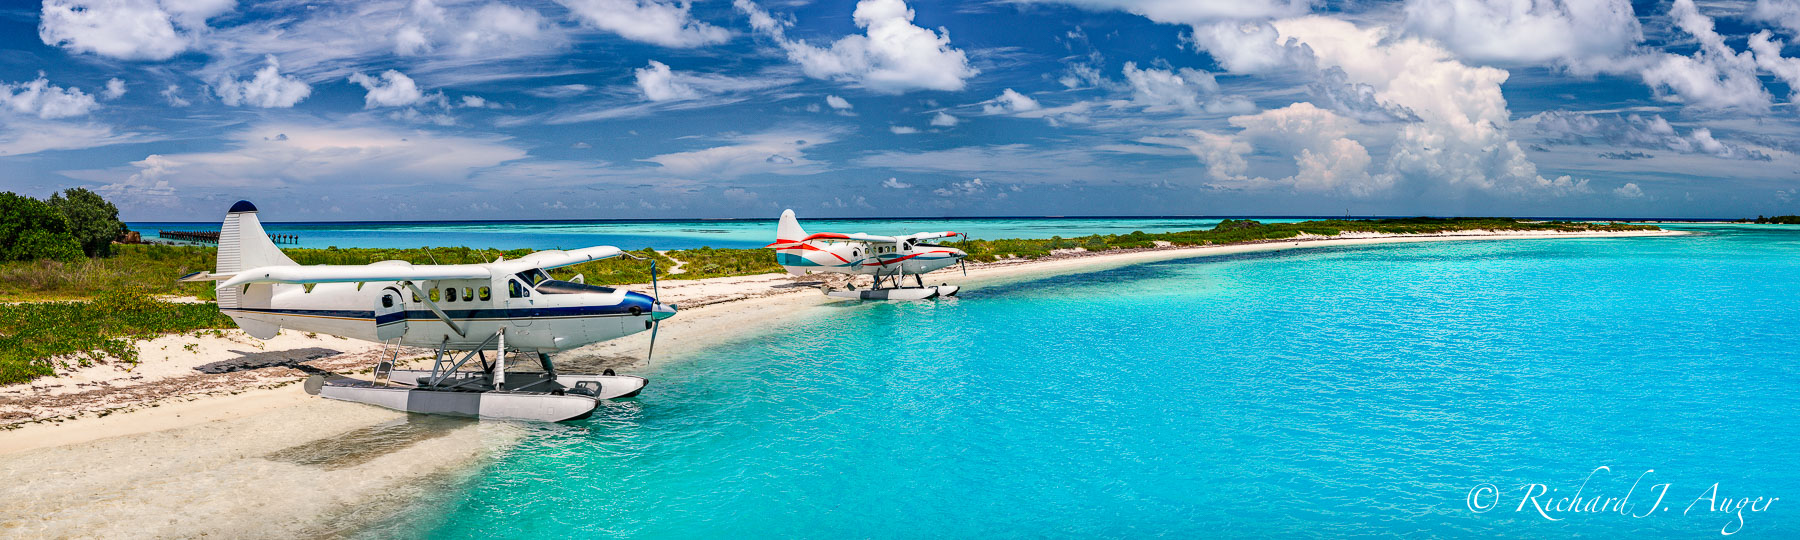 Dry Tortugas National Park, Sea Planes, Island, Ocean, Blue, Getaway, Tropical, Panorama, Photograph, Photographer, Landscape